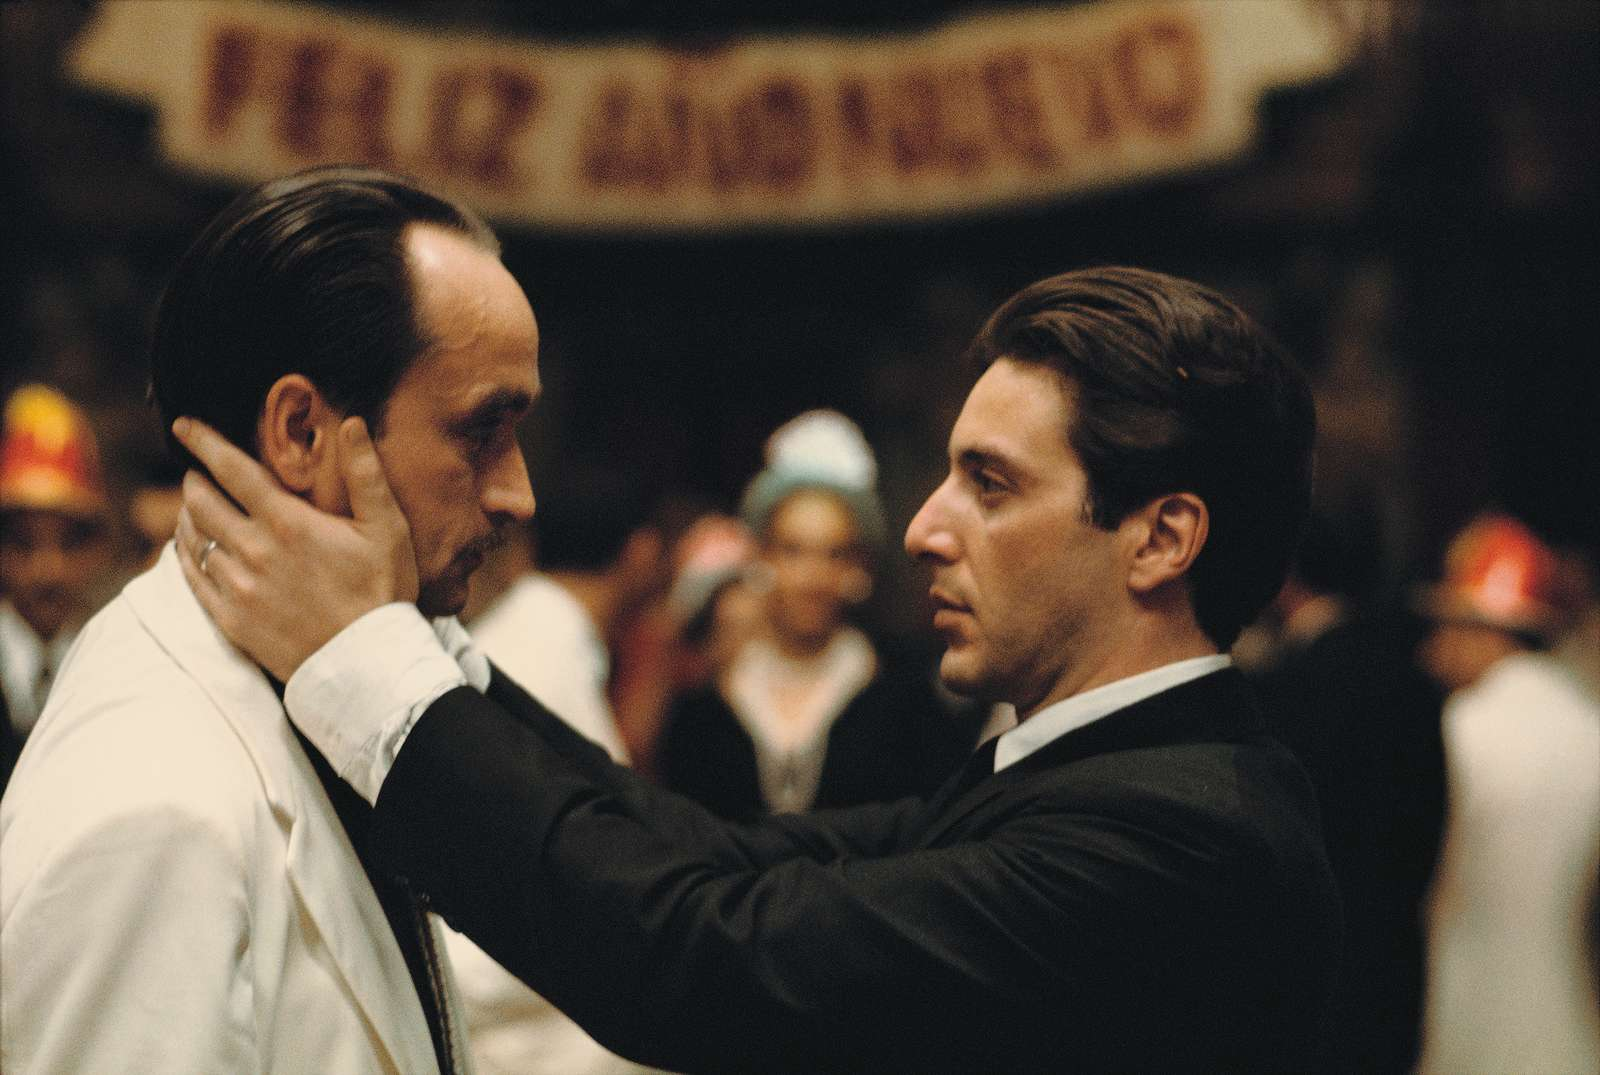 The Kiss (Michael and Fredo), Godfather II, 1973